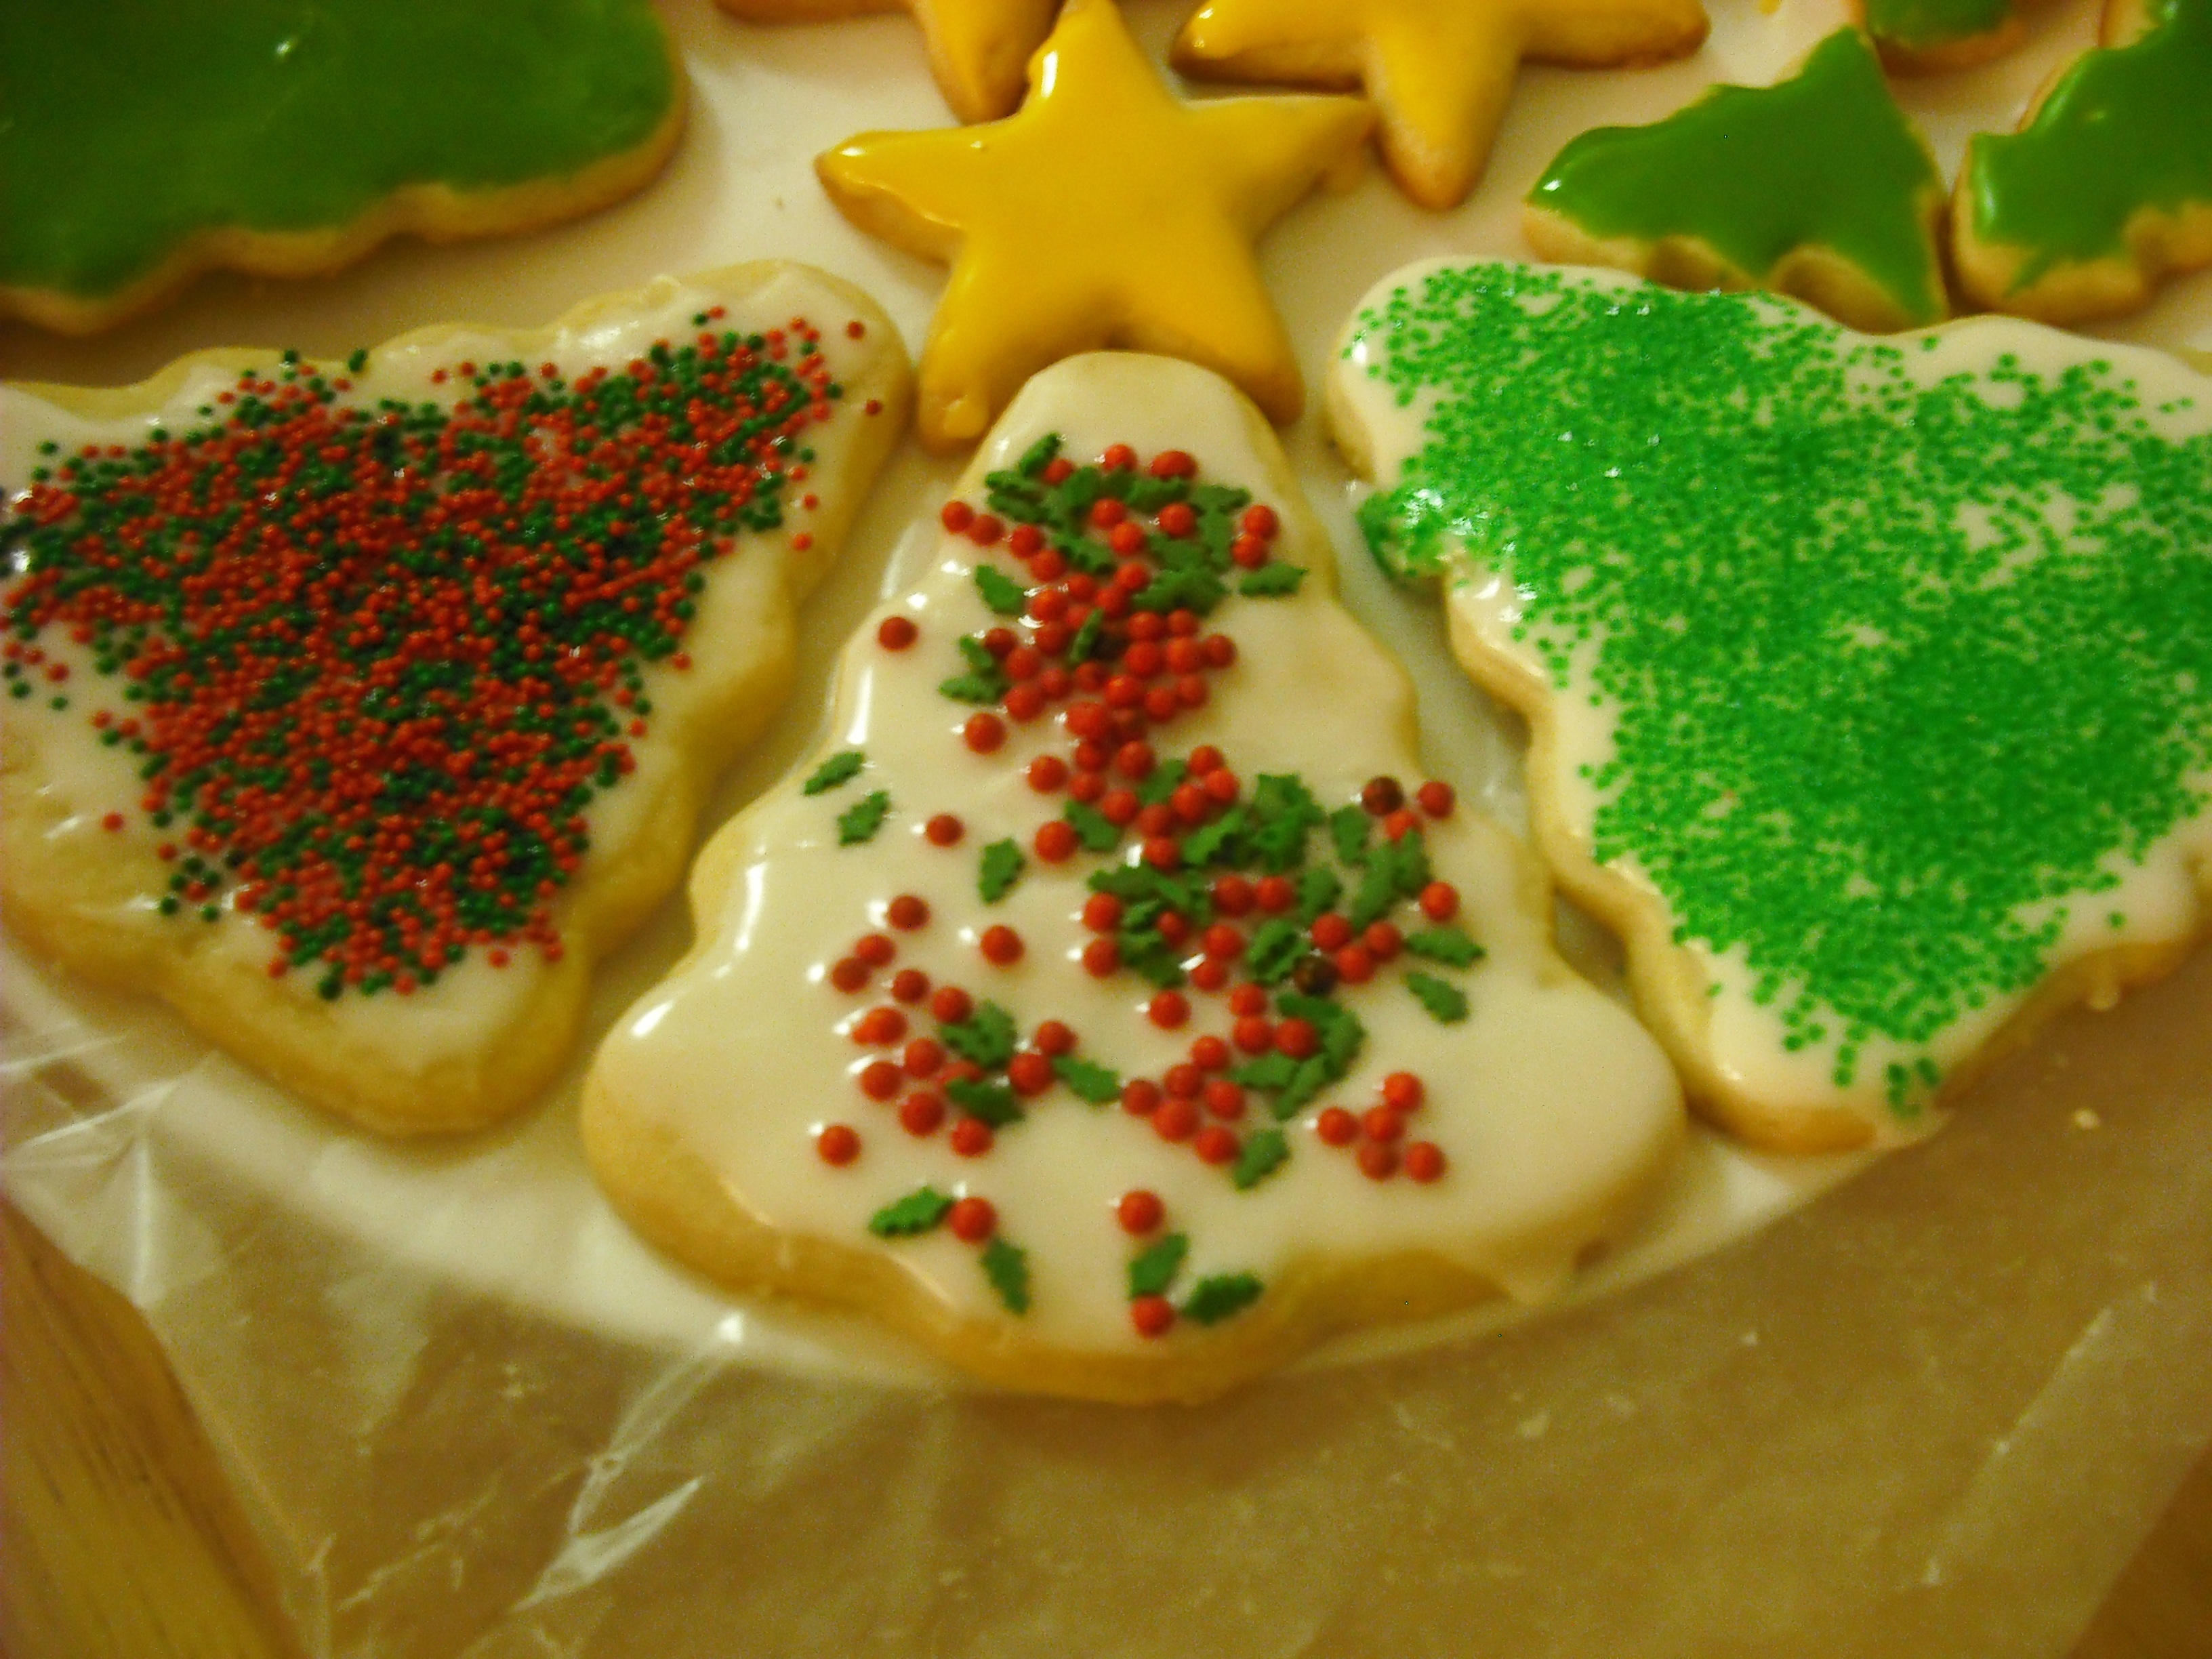 All I Want for Christmas is Cookies: Decorated Sugar Cookies